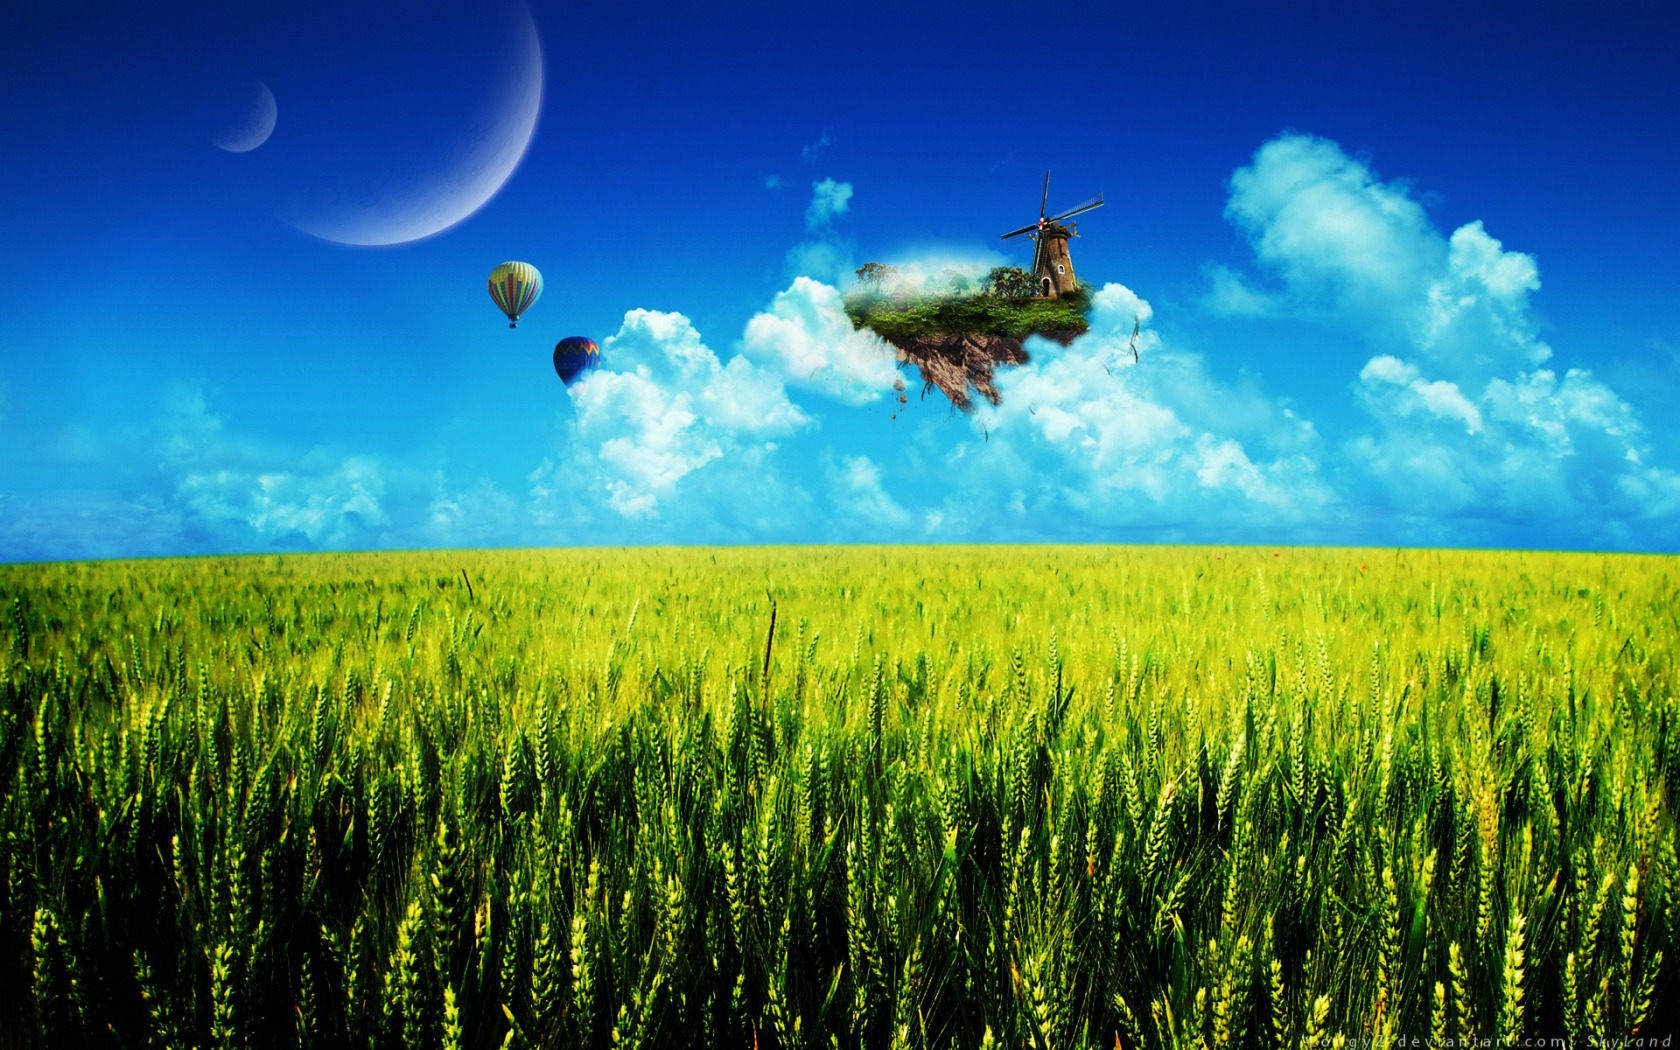 skyland wallpaper photo manipulated nature wallpapers in jpg format